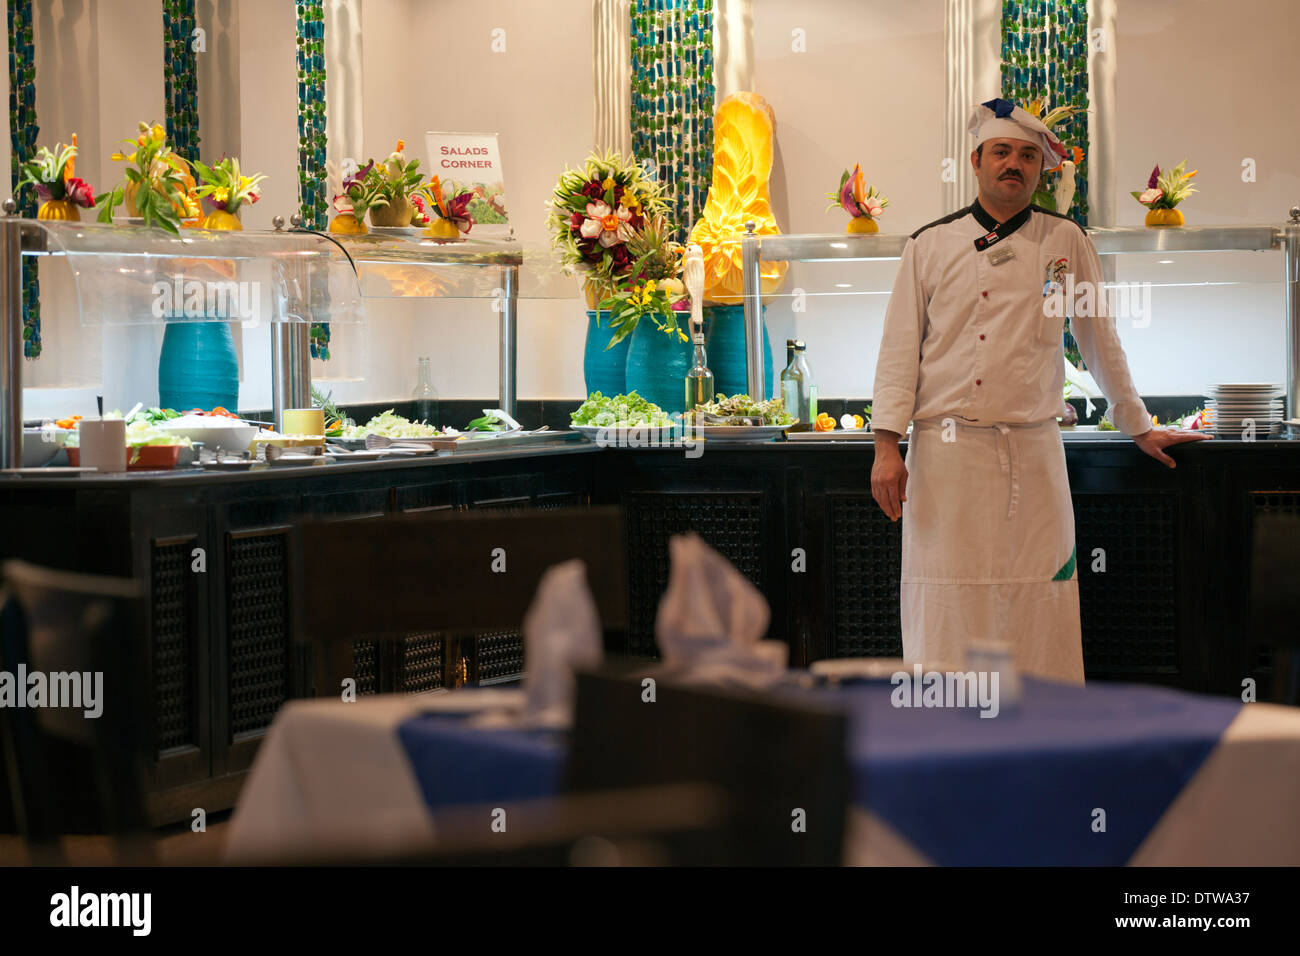 Chef & buffet in Egypt at Sharm Grand Hotel/Red Sea Holidays - Stock Image